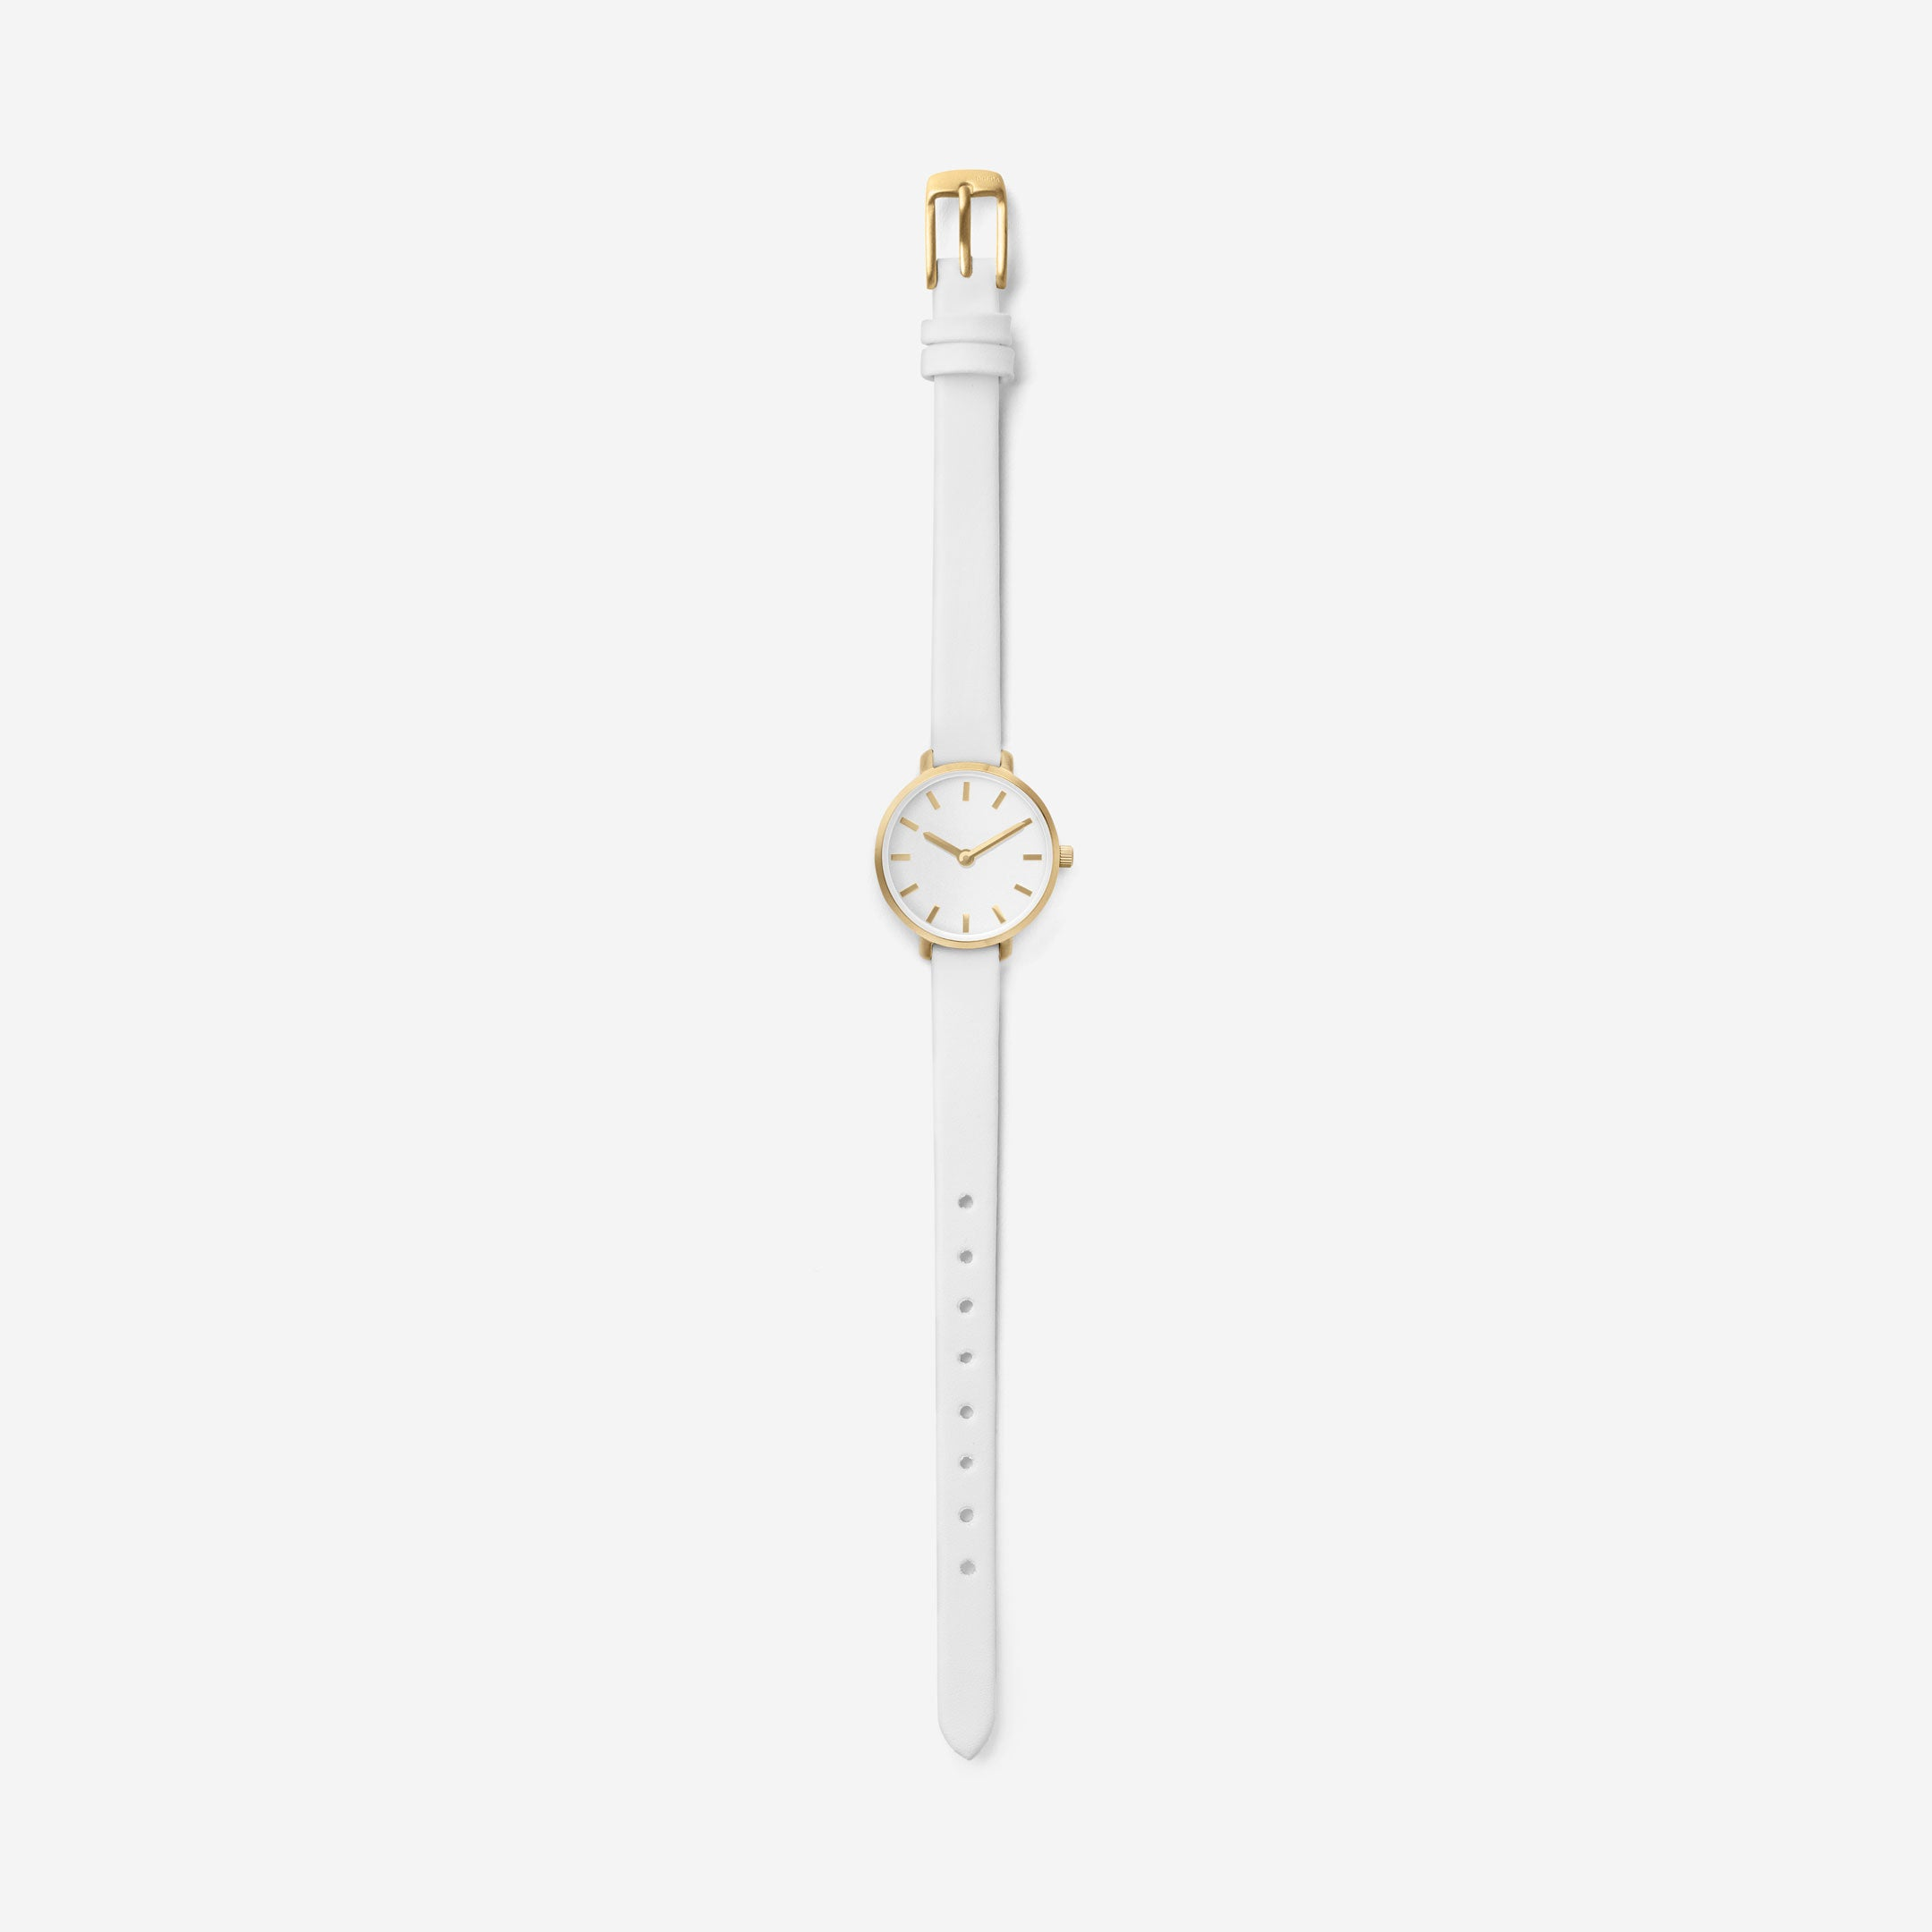 //cdn.shopify.com/s/files/1/0879/6650/products/breda-beverly-1730d-gold-white-leather-watch-long_1024x1024.jpg?v=1522789928